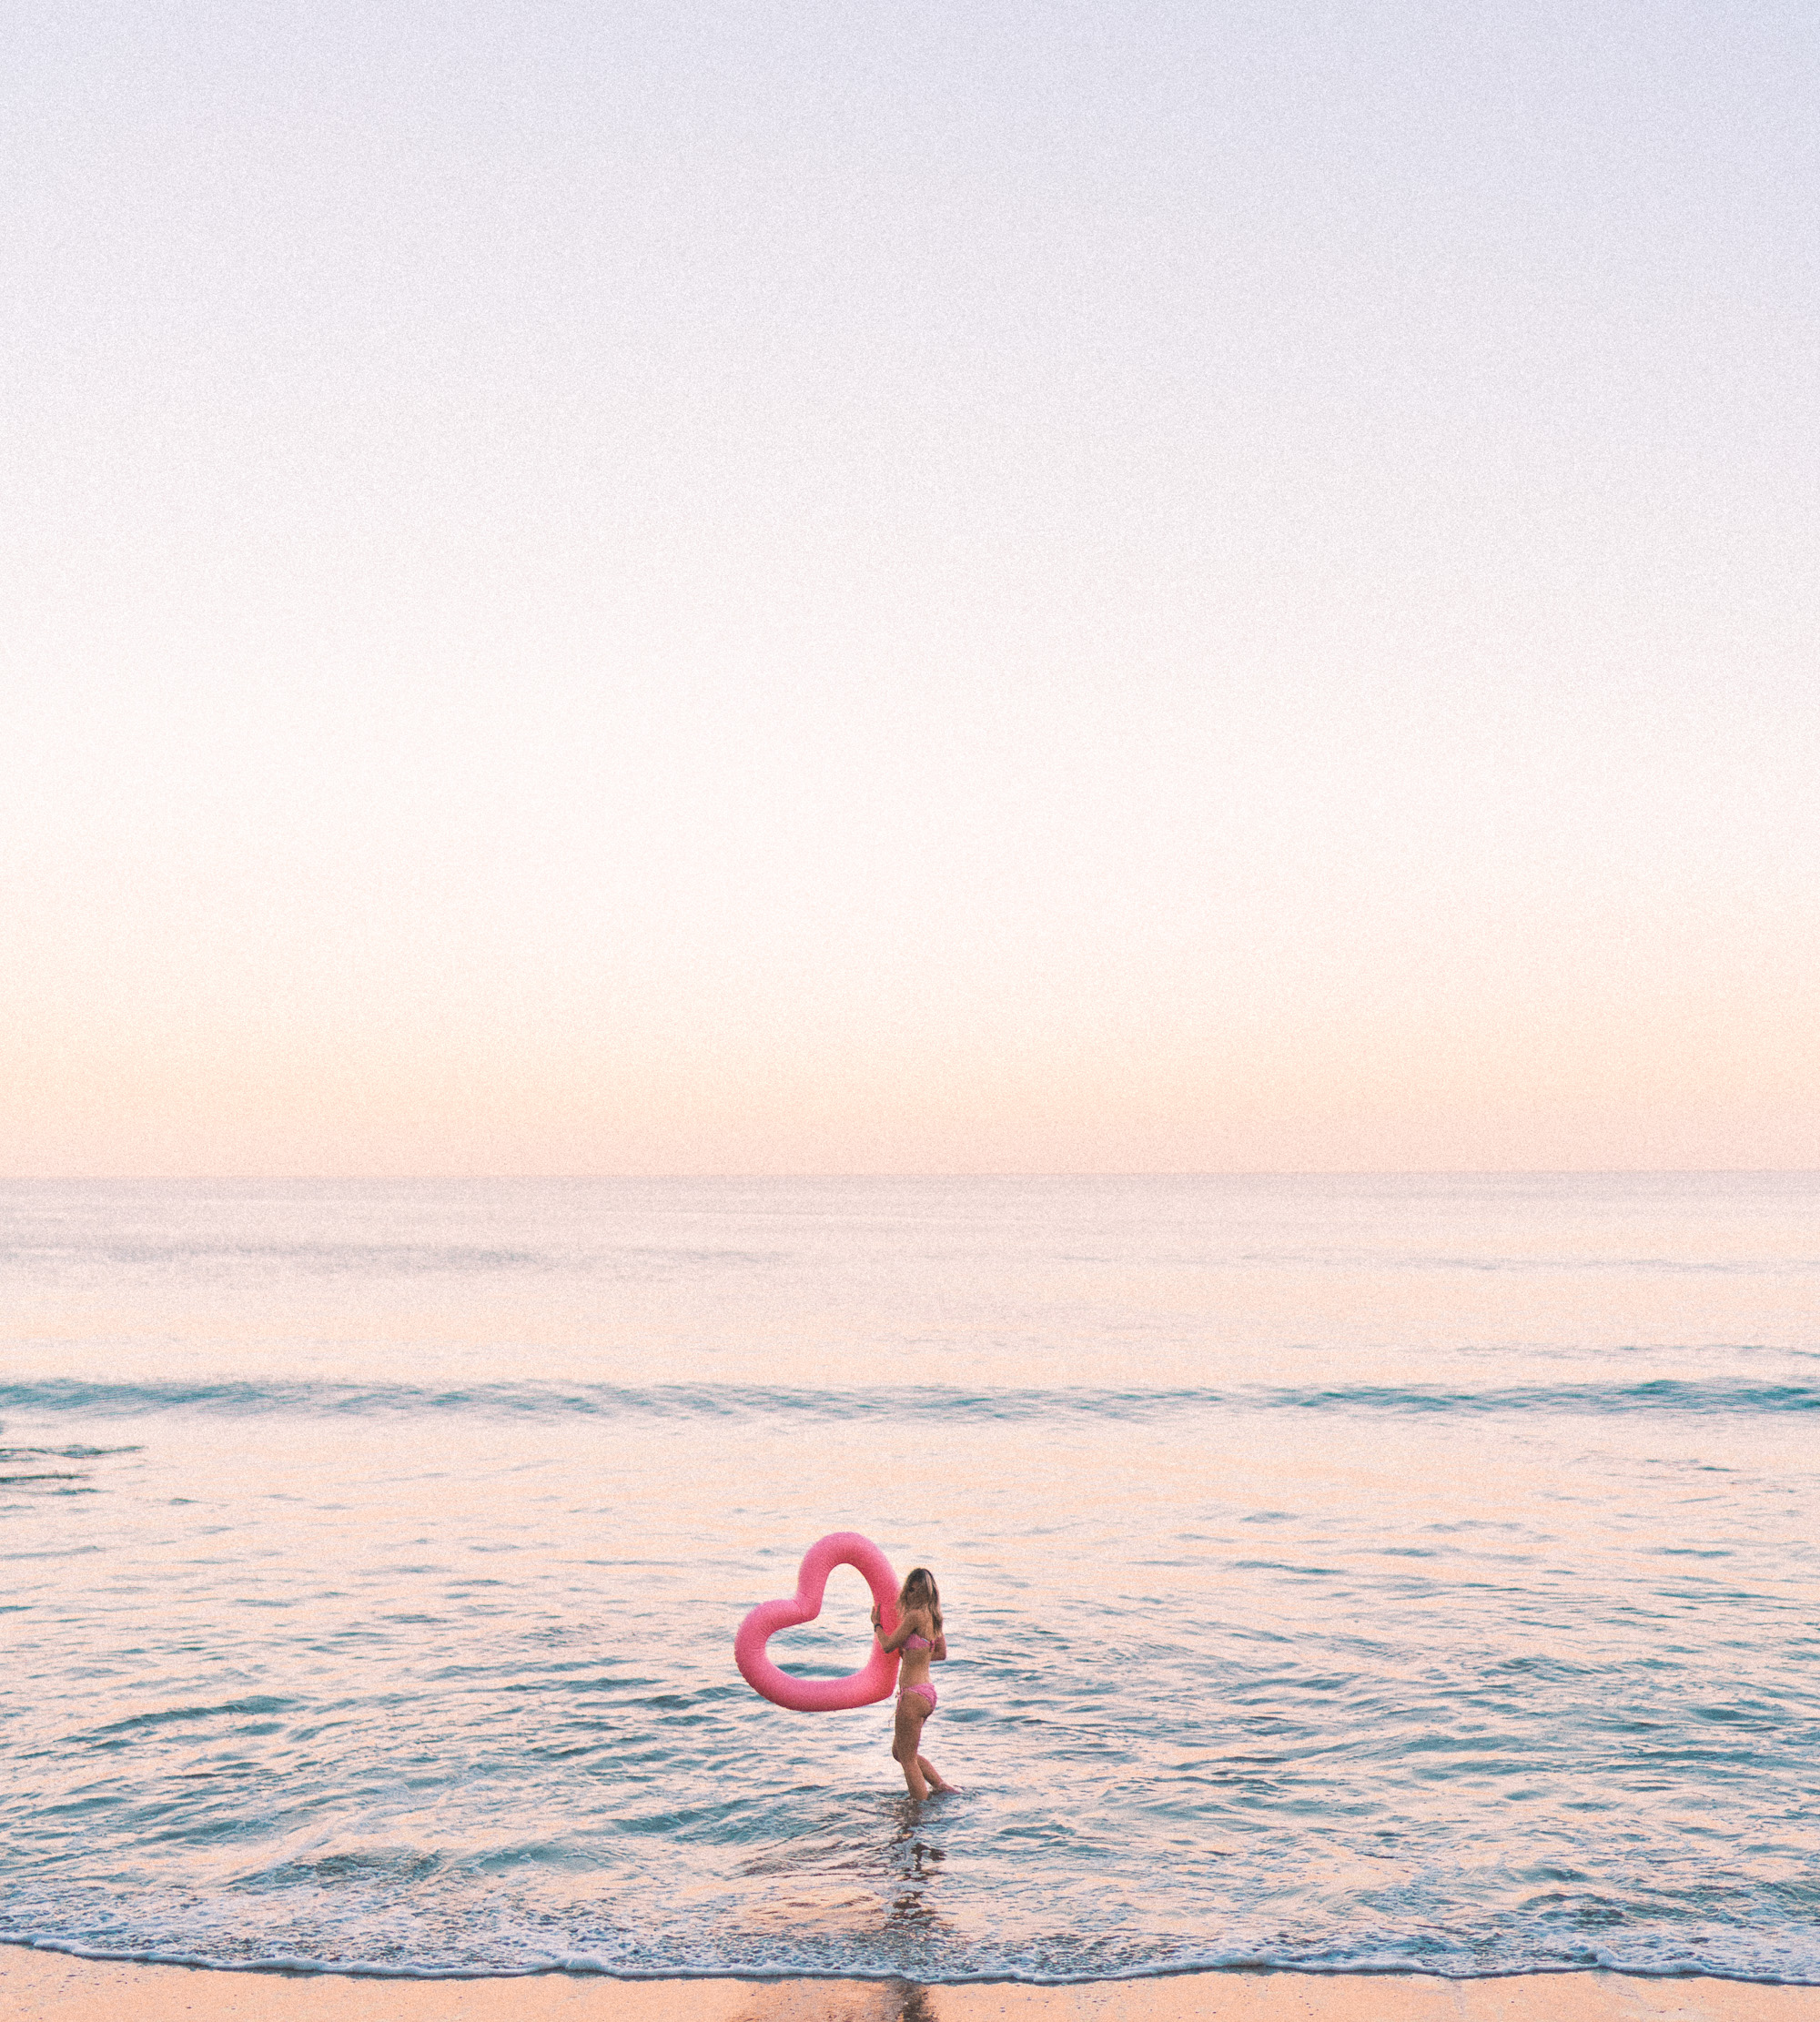 swimming in malibu with pink heart floatie